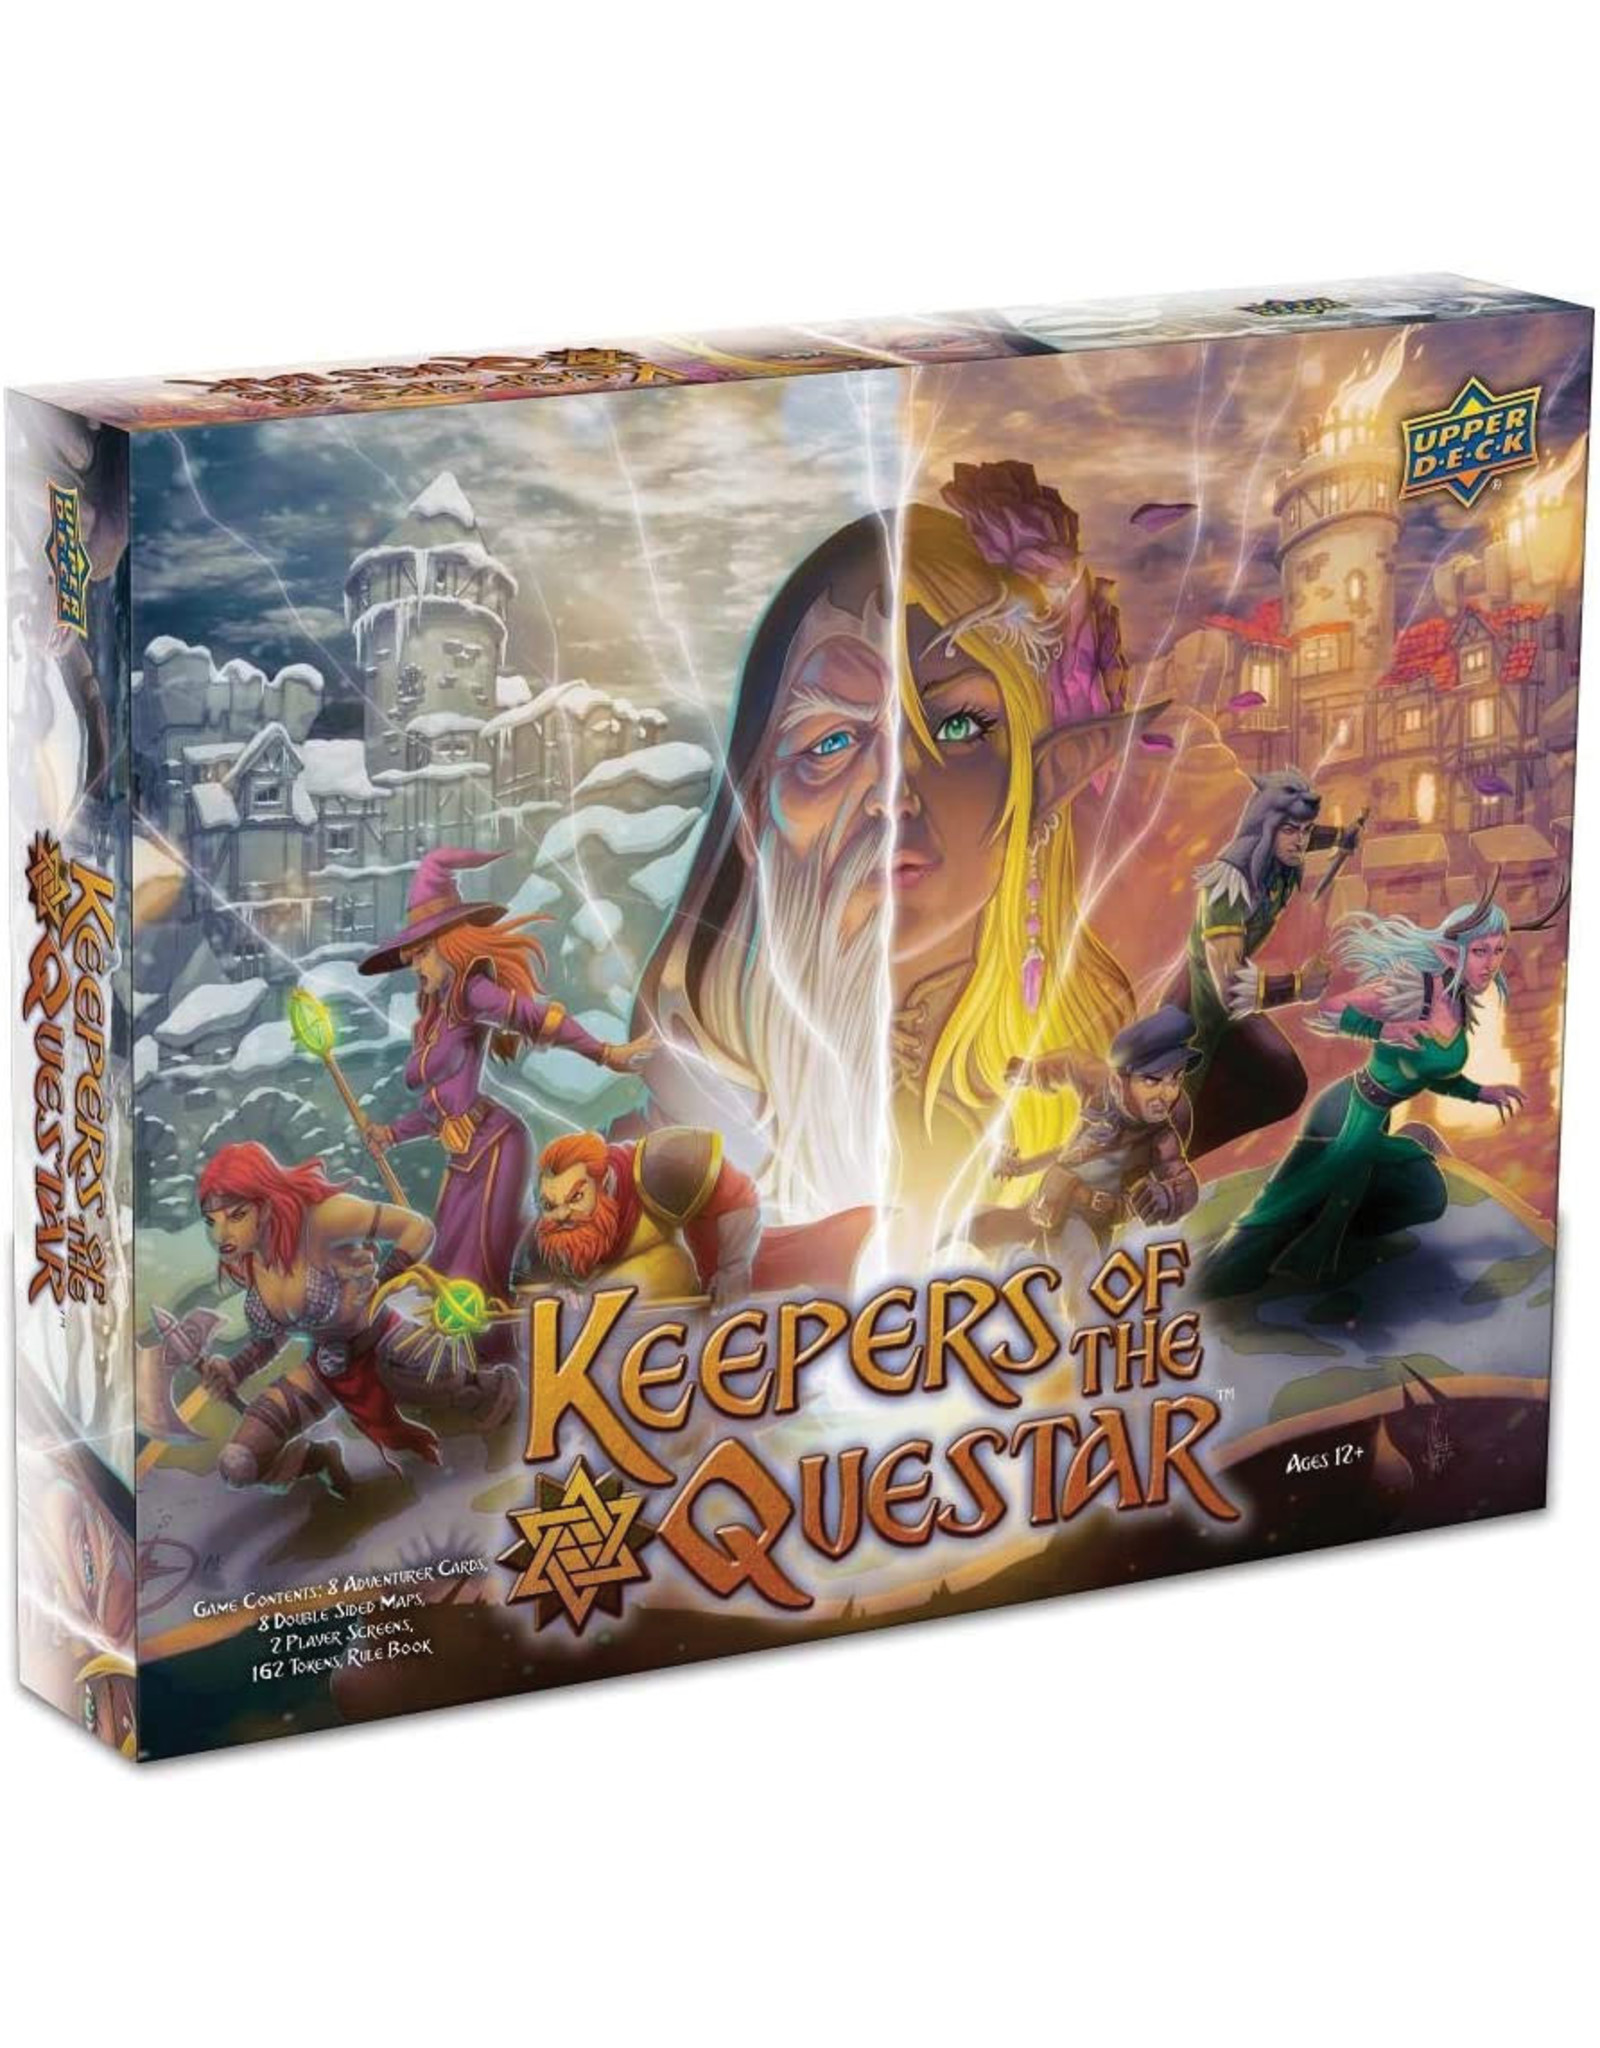 Upper Deck Keepers of the Questar